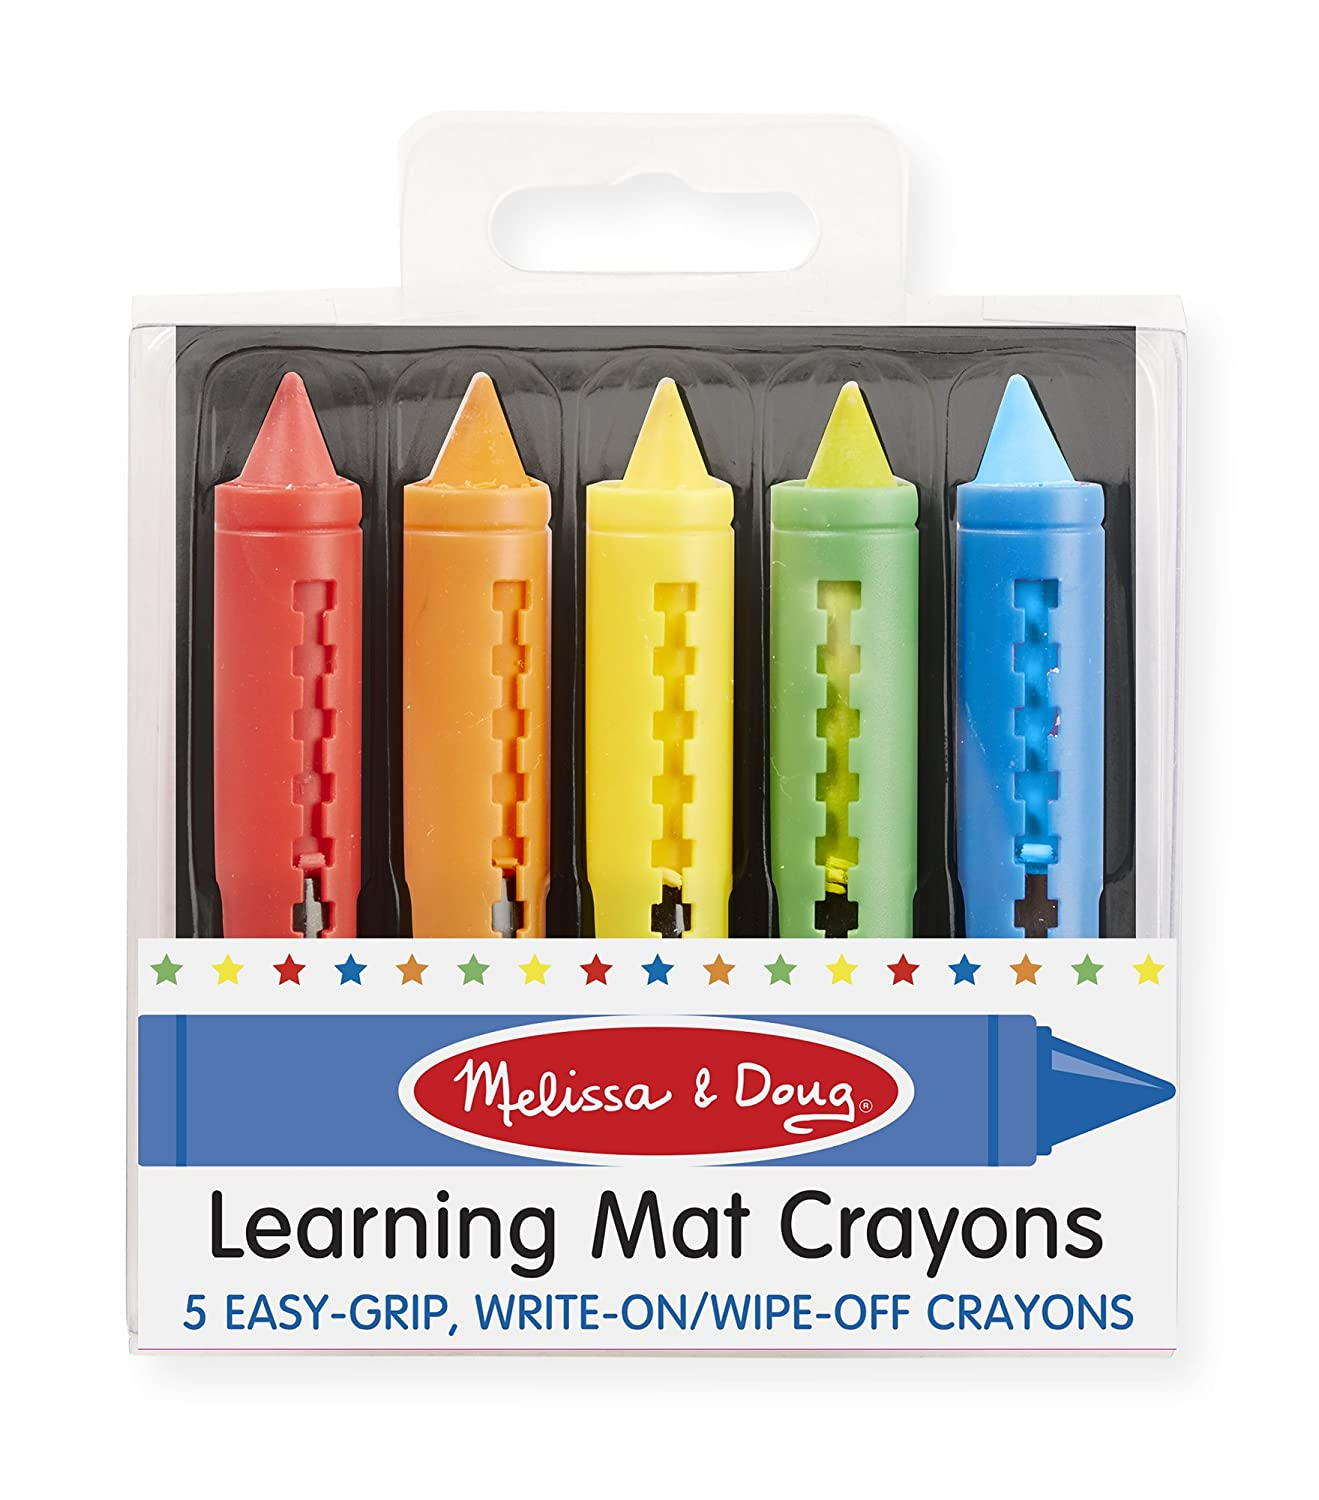 Melissa & Doug Learning Mat Crayons - 5 Colors Melissa and Doug 4279 reikos_0019522742AM_0027928 Miscellaneous Child